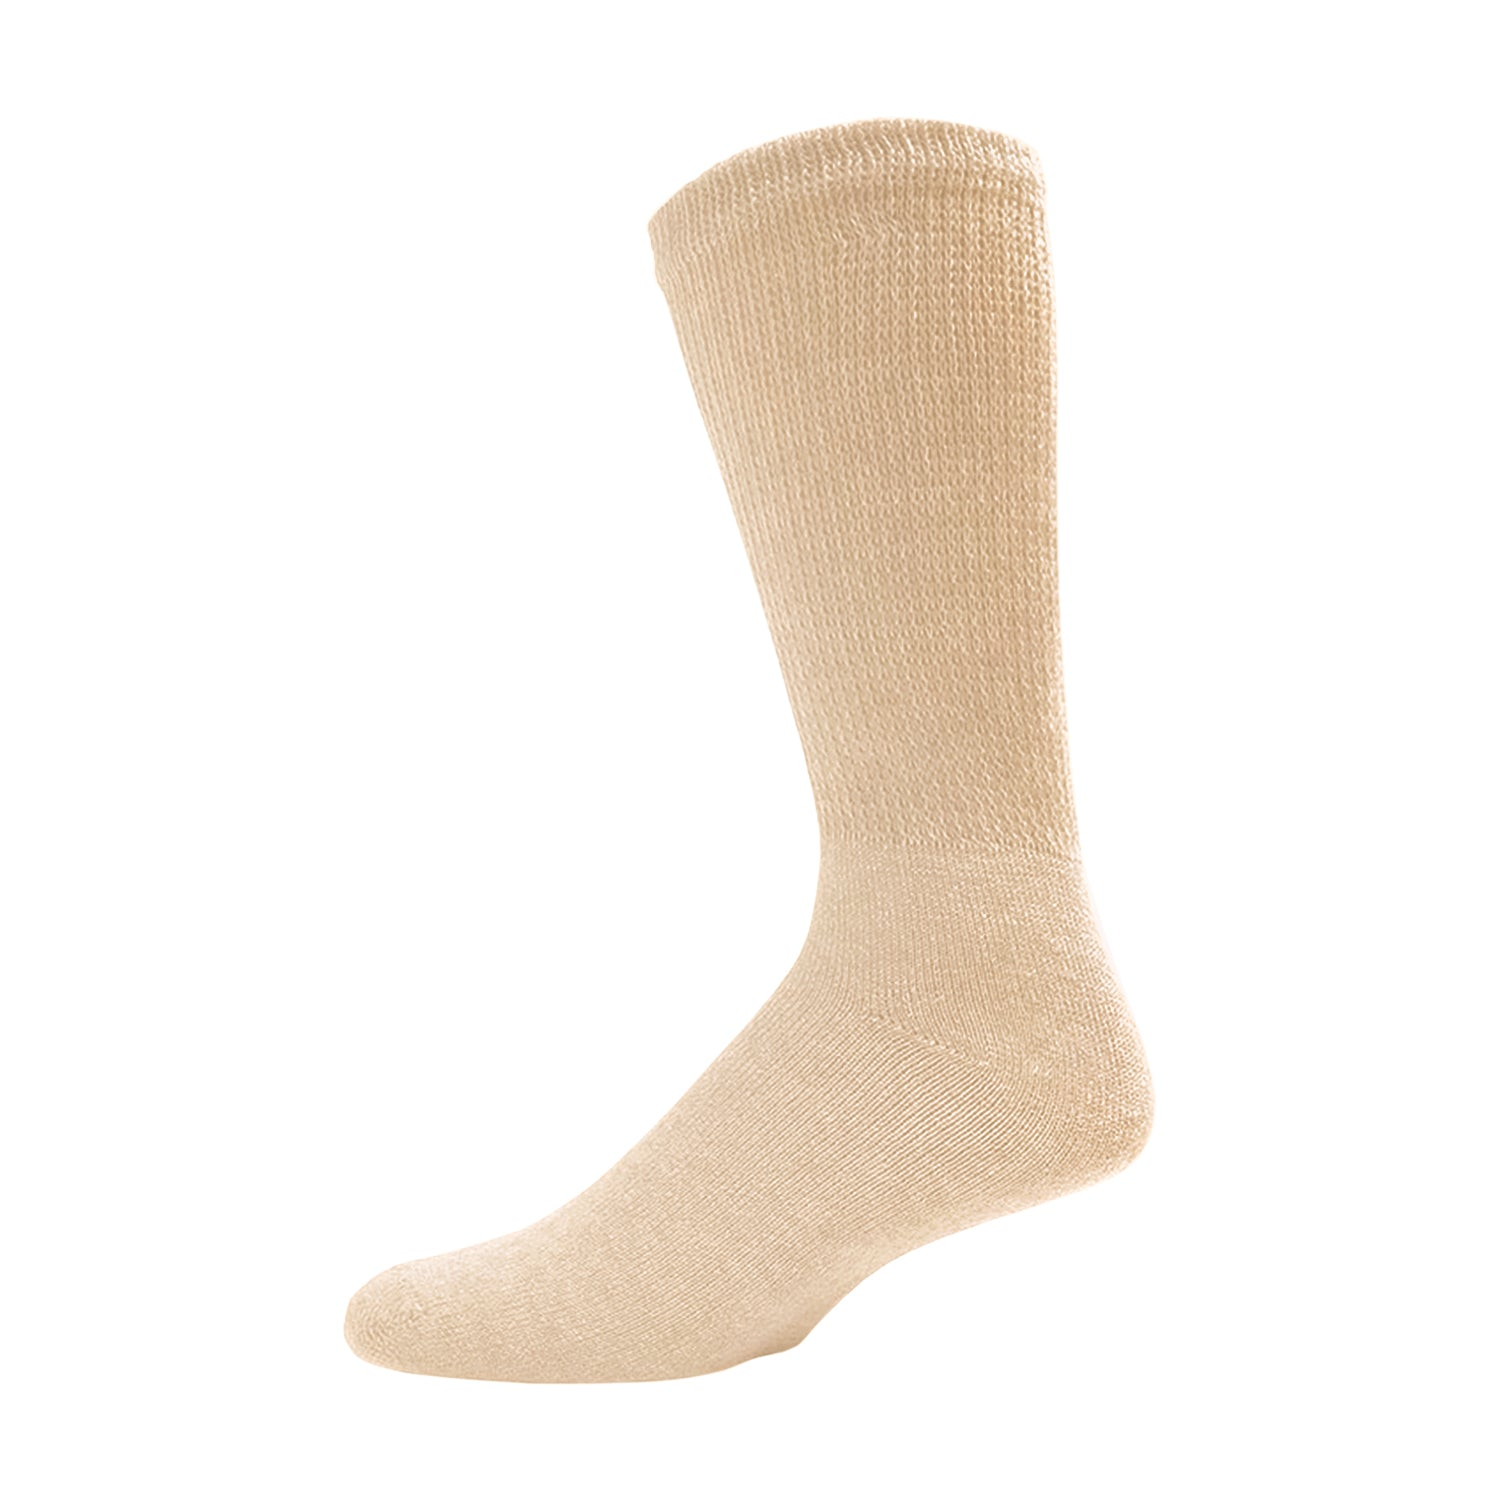 Beige Diabetic Crew Cotton Socks With Ribbed Nonbinding Top